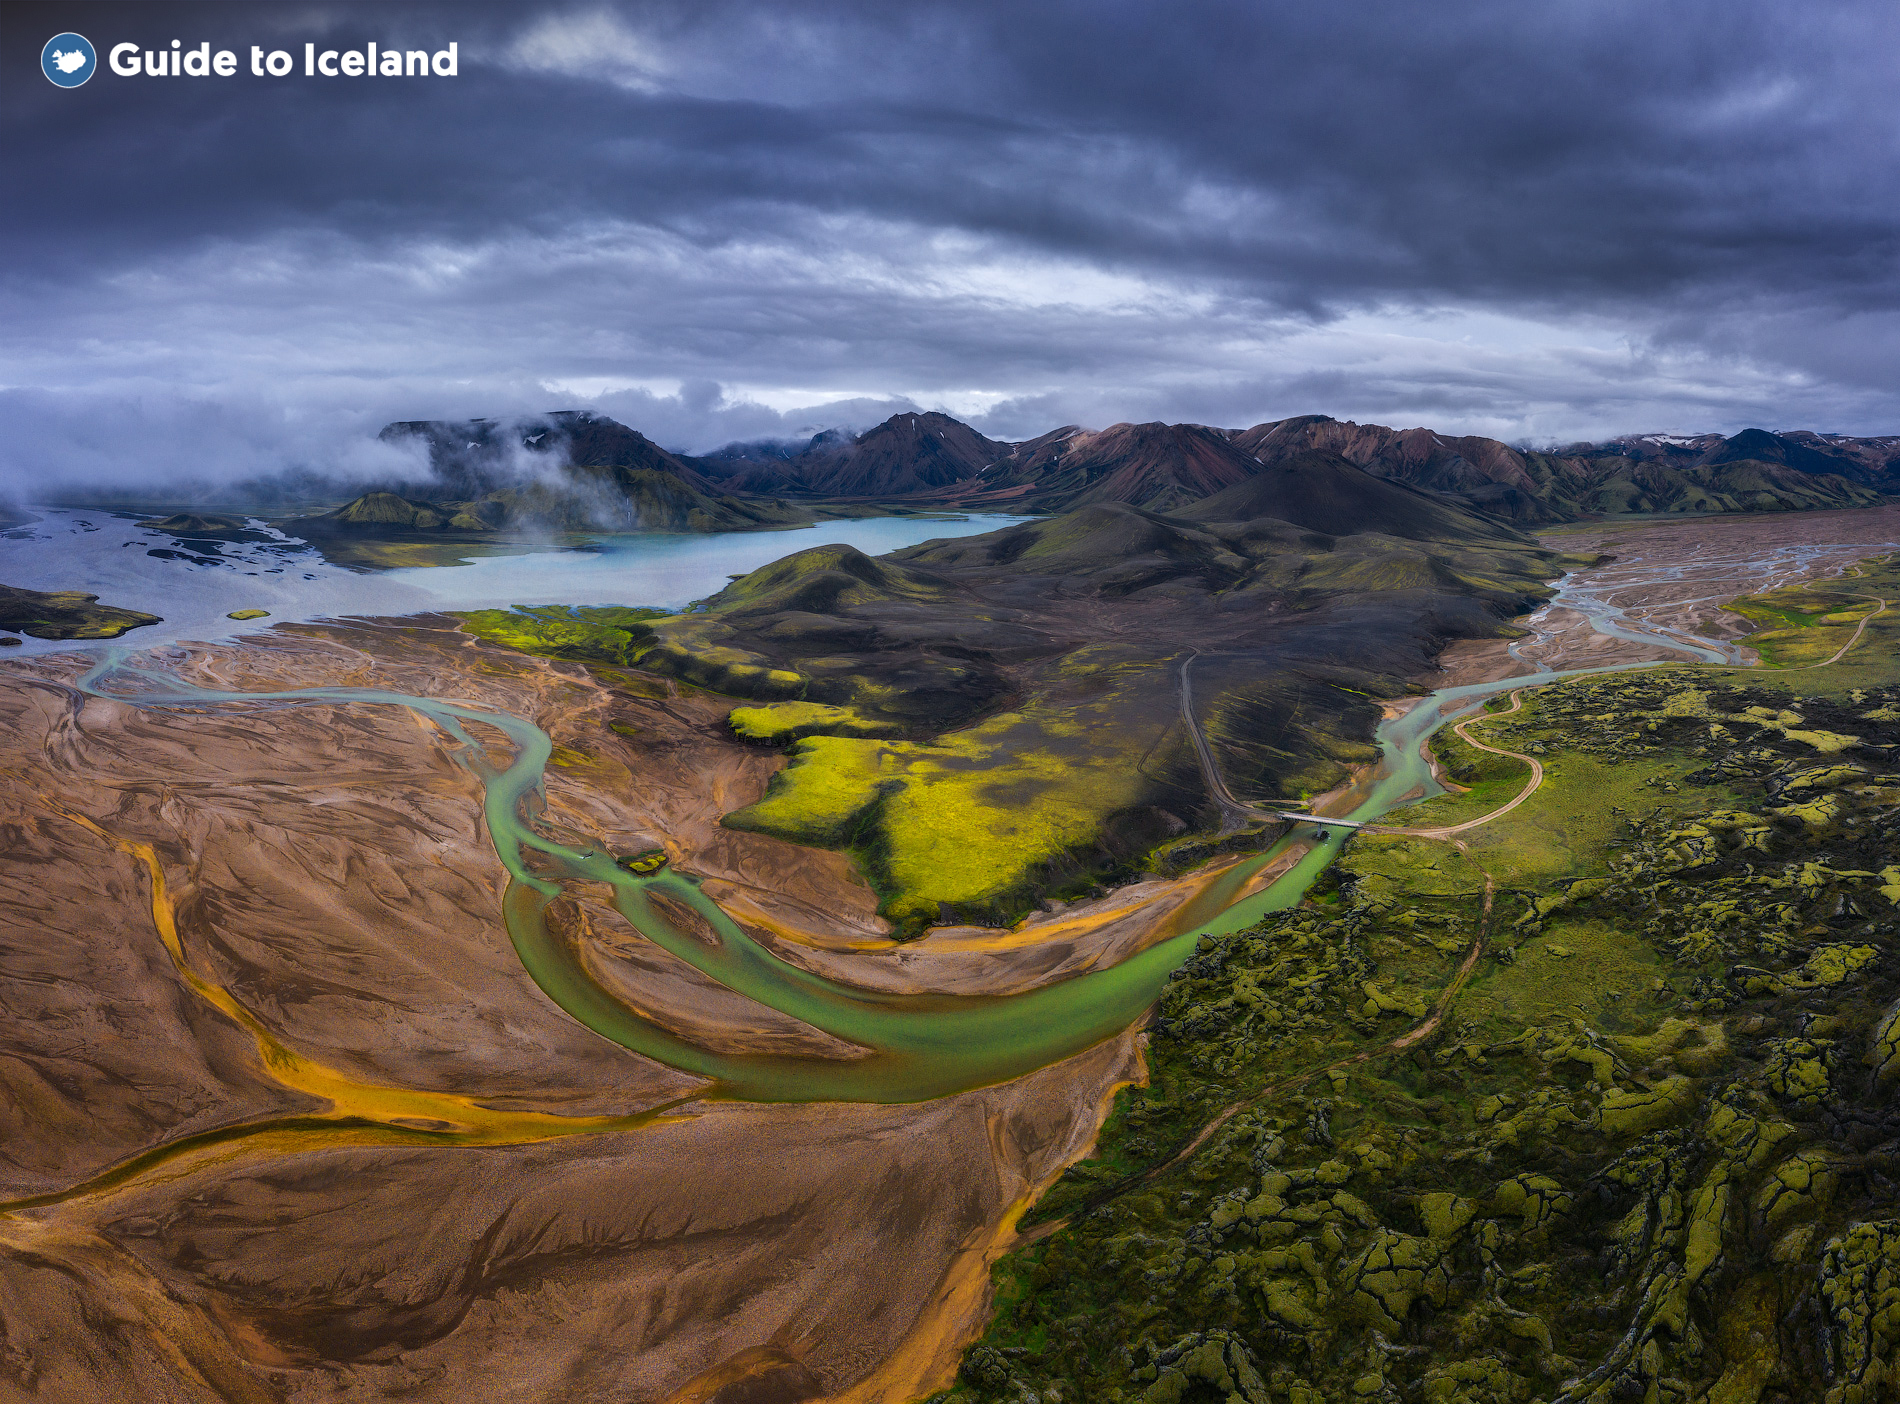 Landmannalaugar is the most popular region of the Icelandic central highlands.